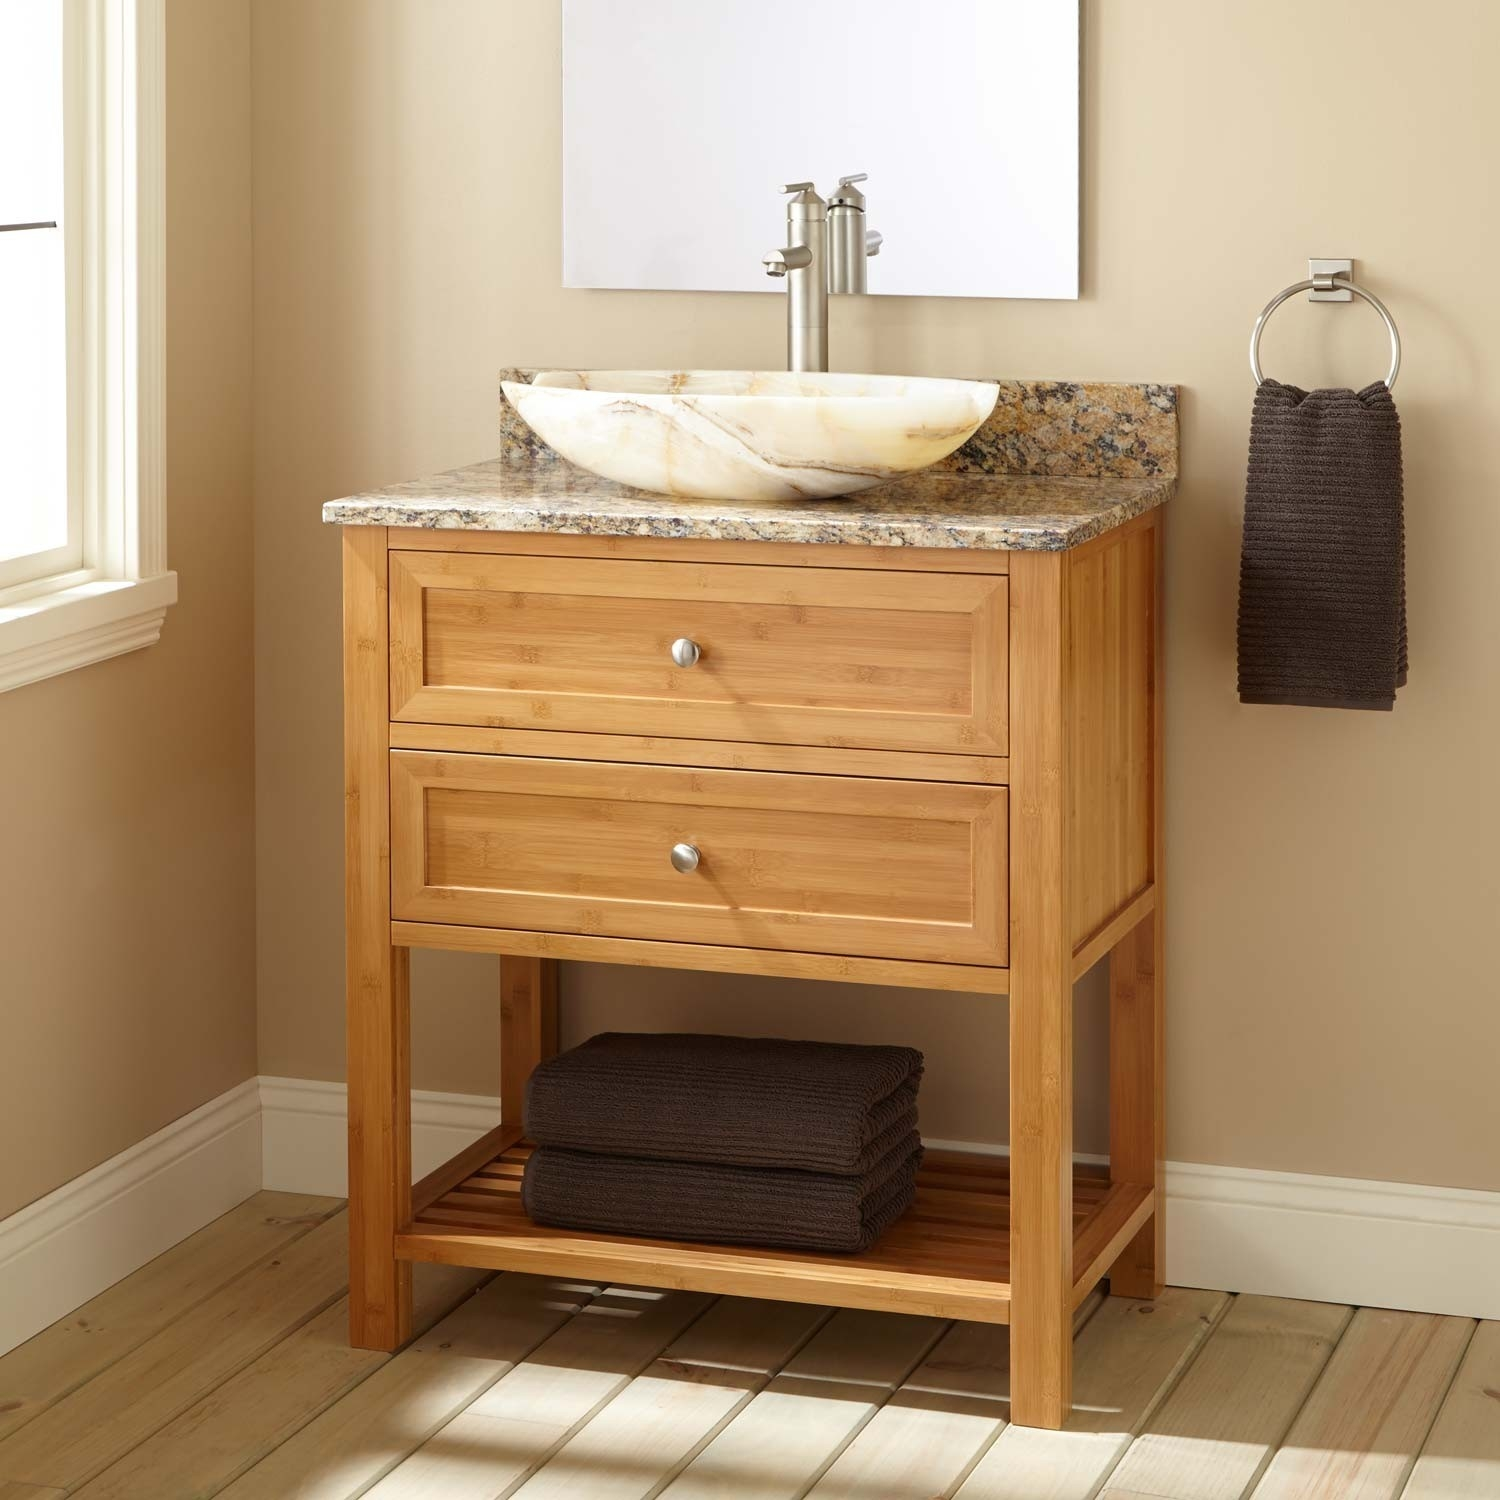 50 Narrow Depth Bathroom Vanity You Ll Love In 2020 Visual Hunt